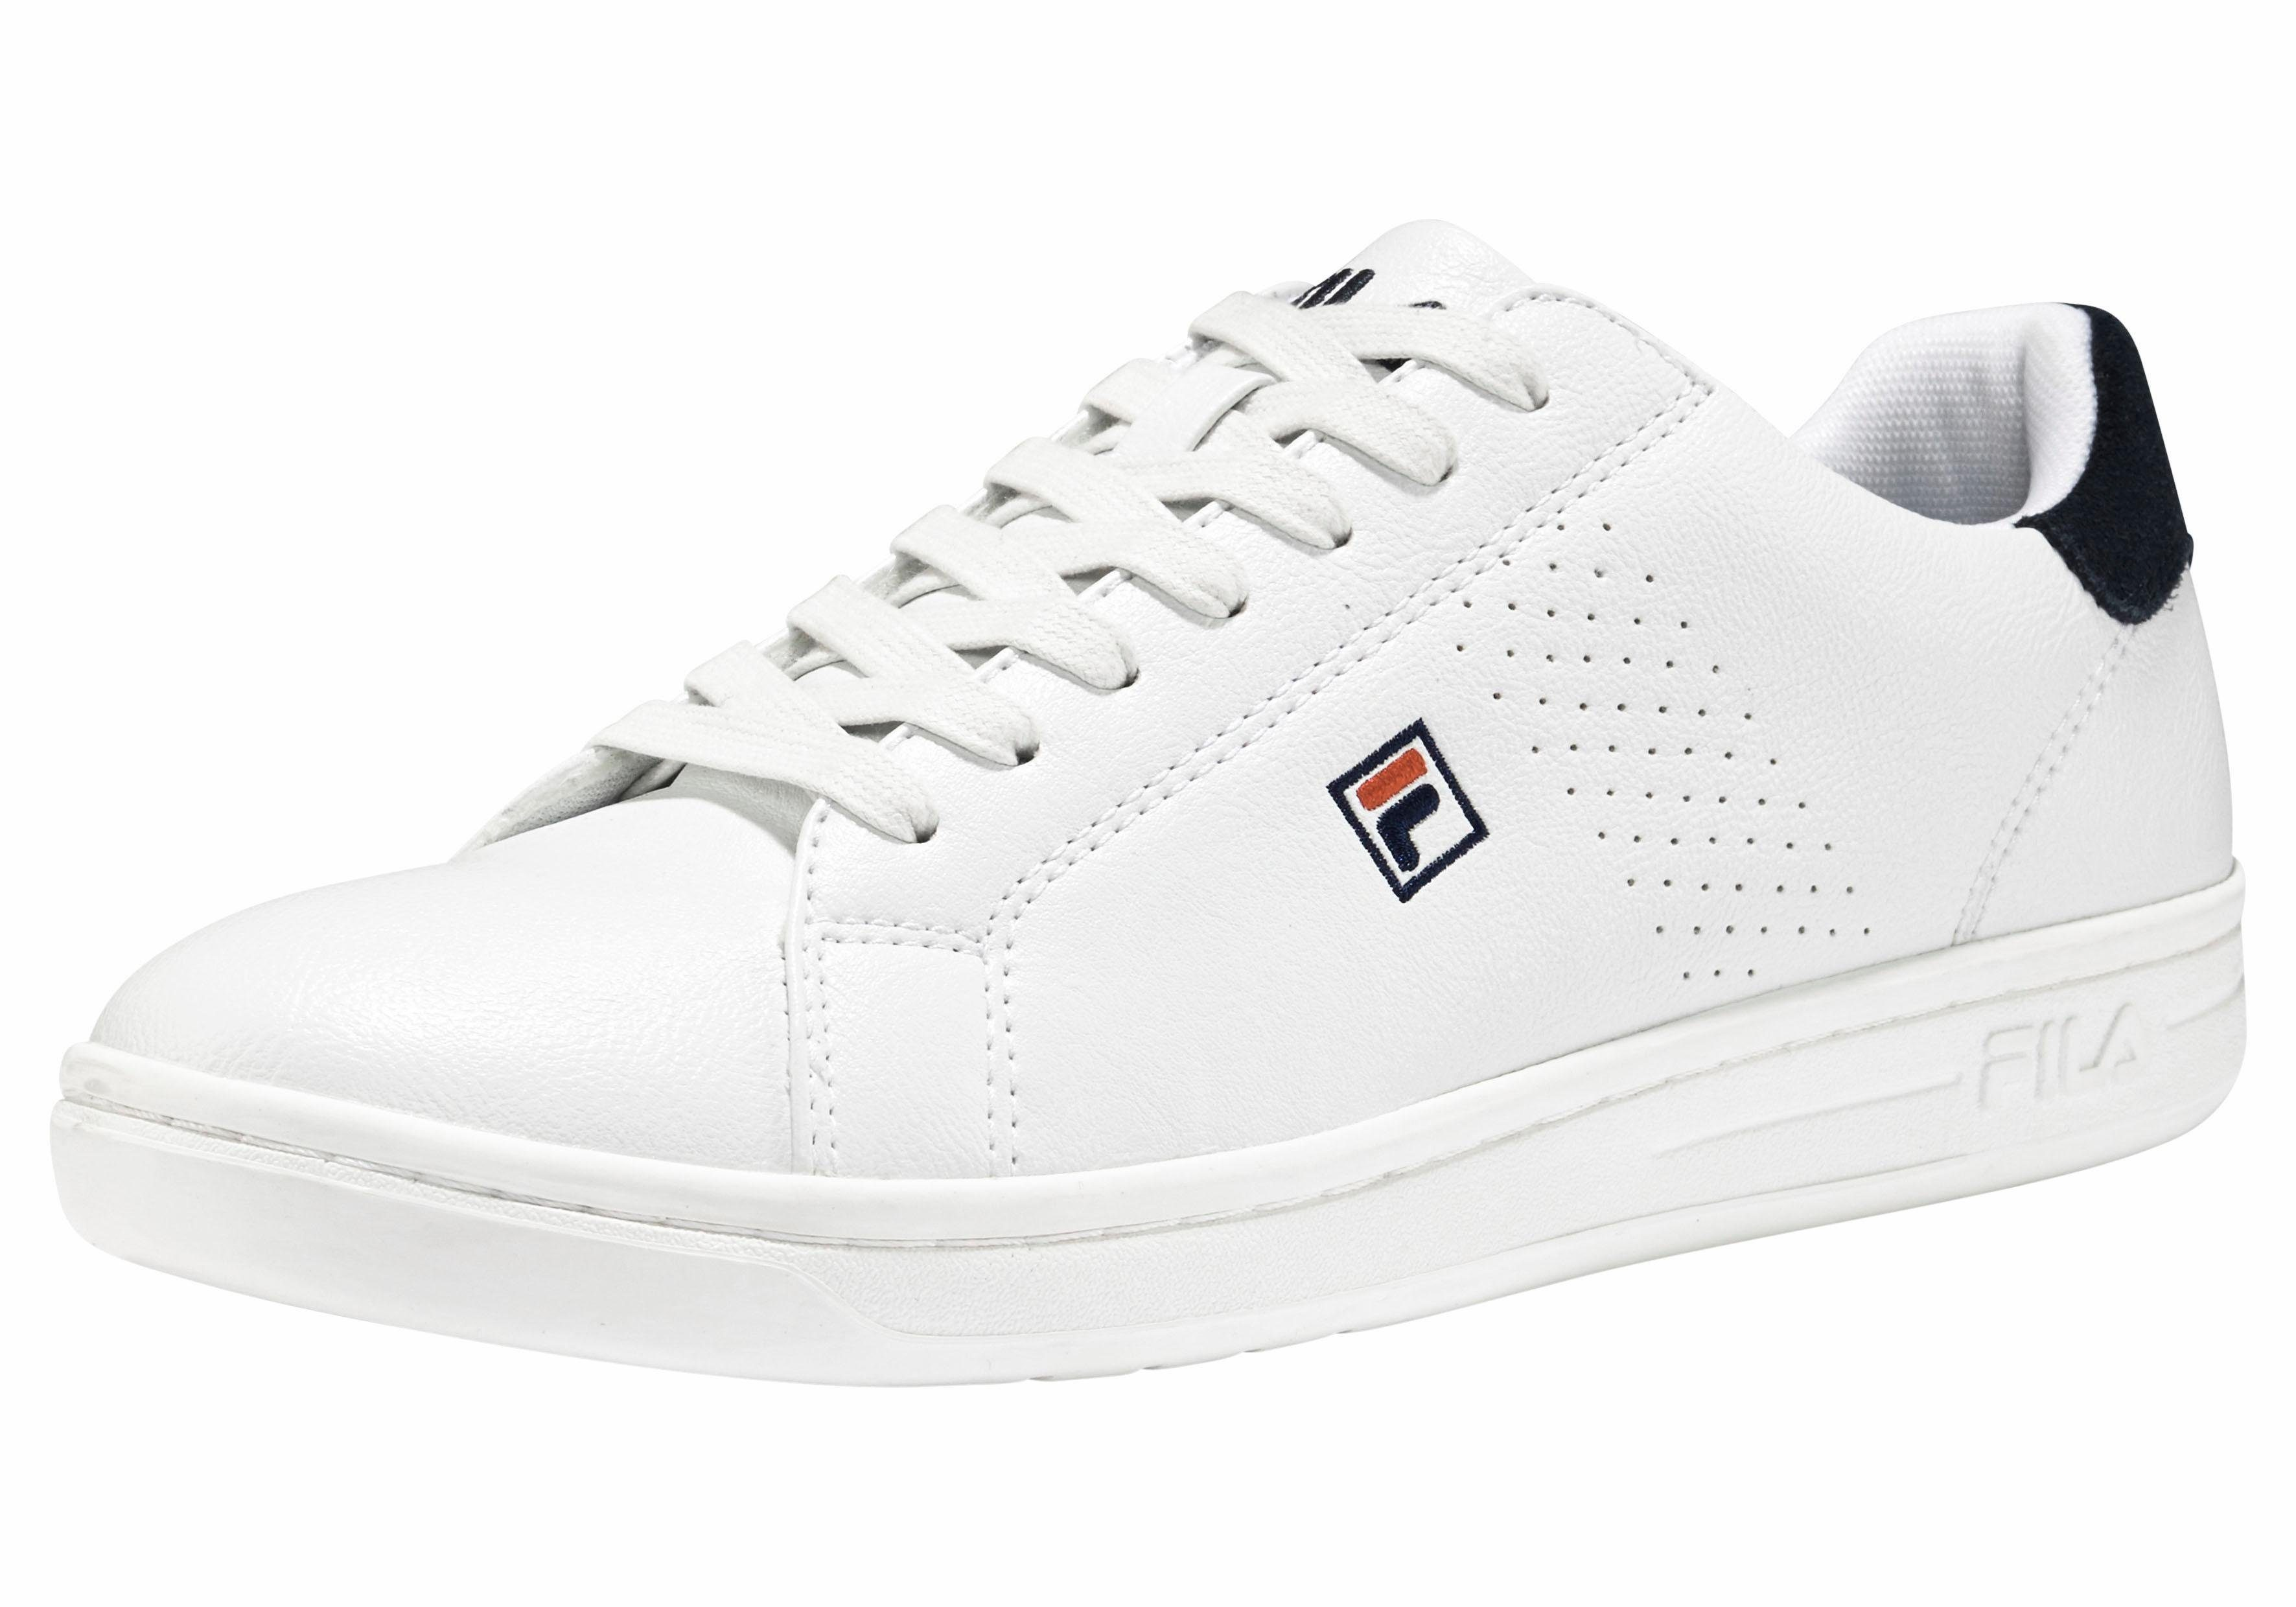 Chaussures Blanches Pour Les Hommes Fila RwyeRwd0